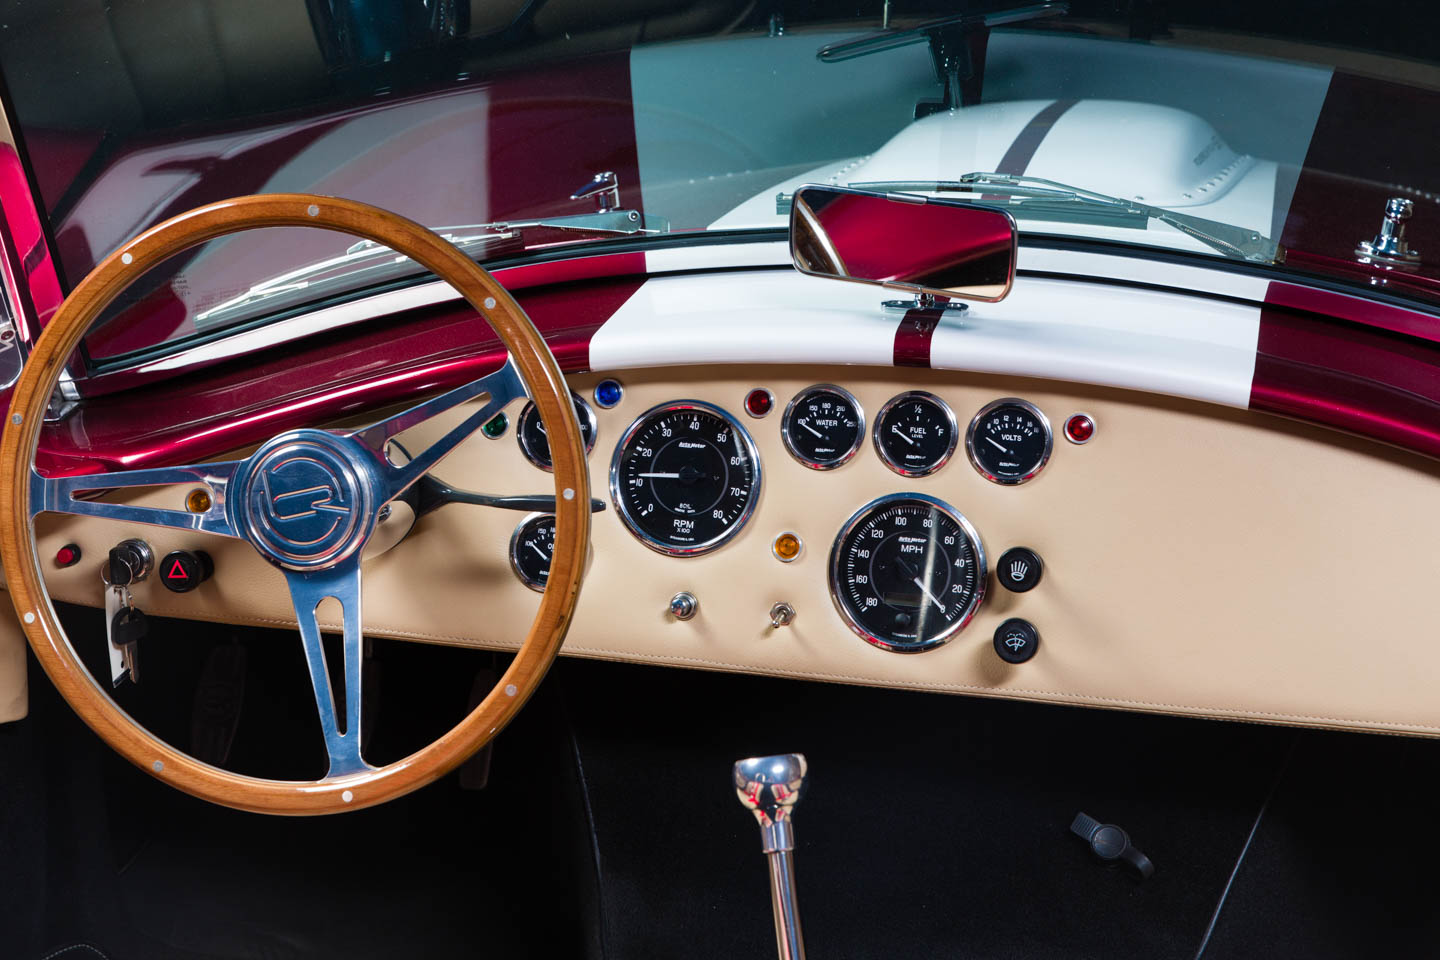 Interior of the candy red Shelby Cobra